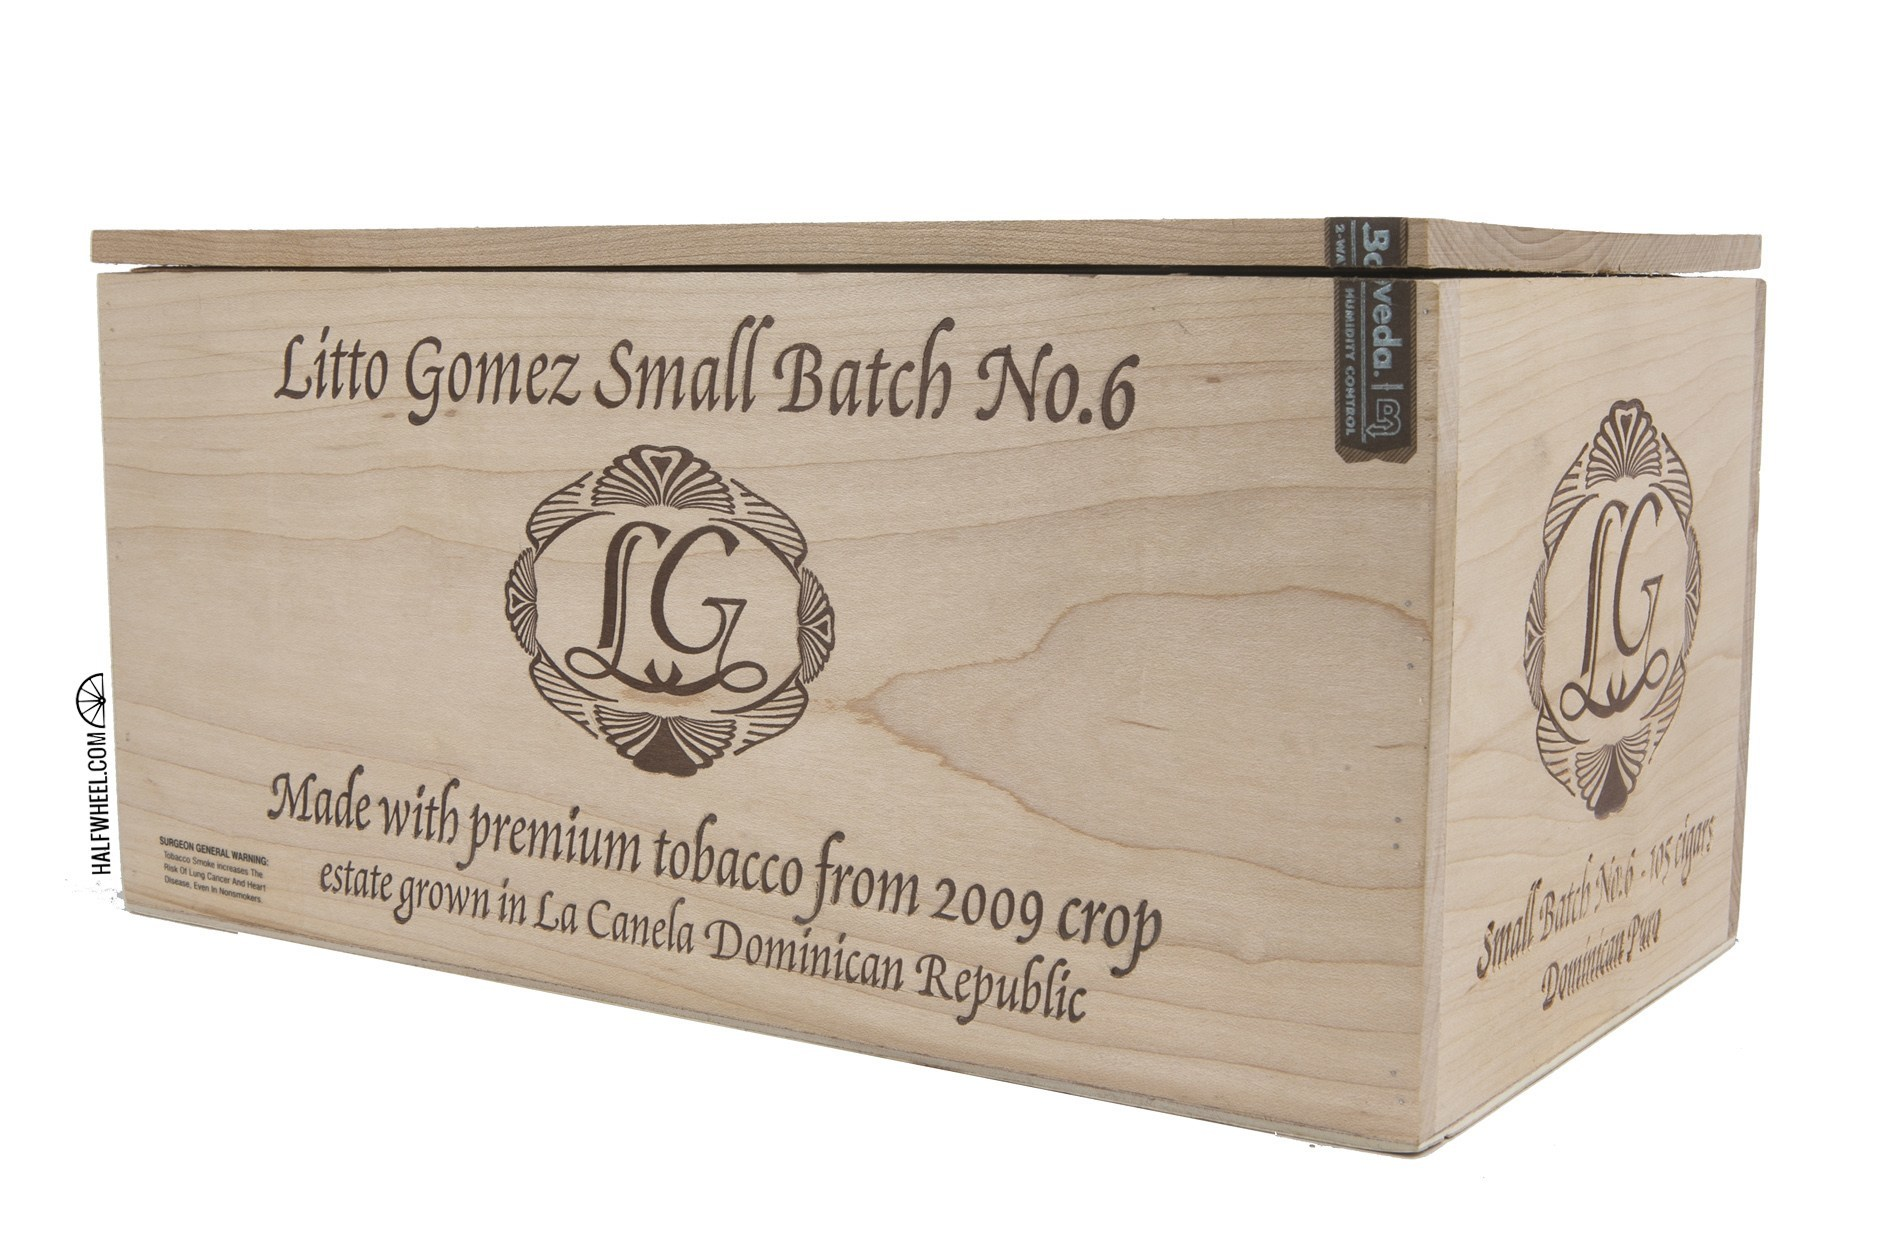 Litto Gomez Small Batch No. 6 Box 1